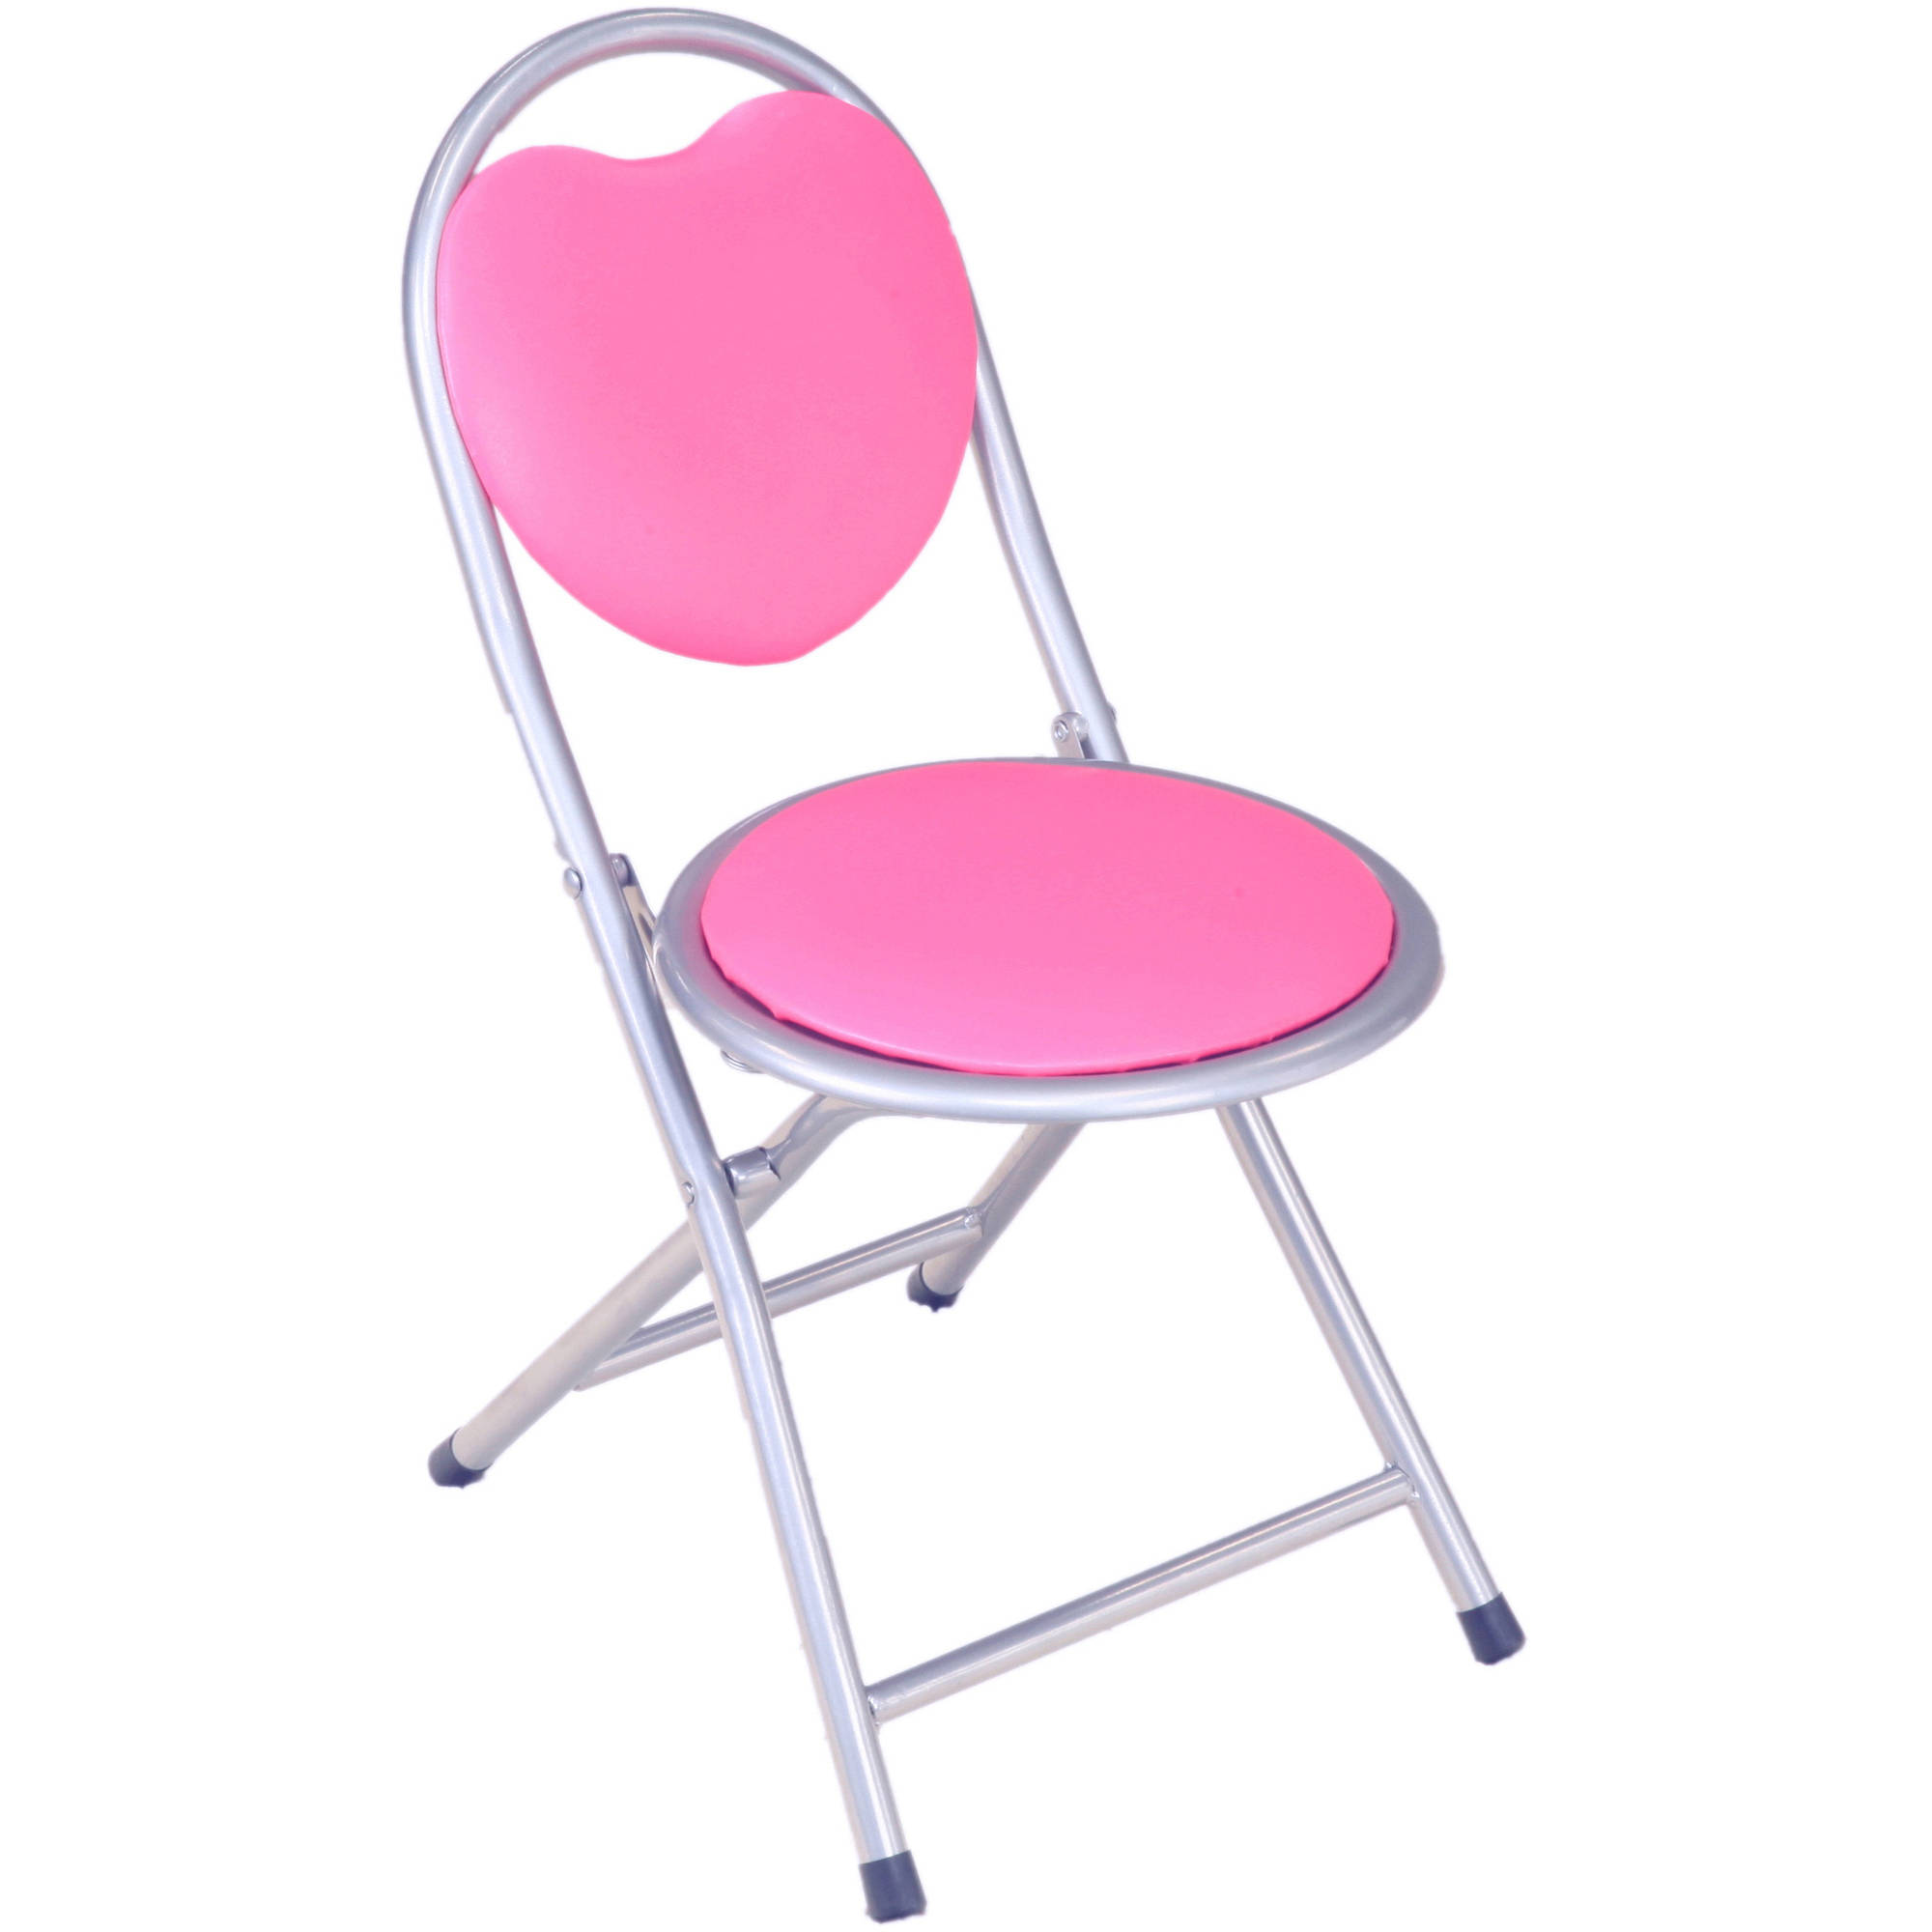 Attractive Home Craft Kidu0027s Metal Folding Chair, Multiple Colors